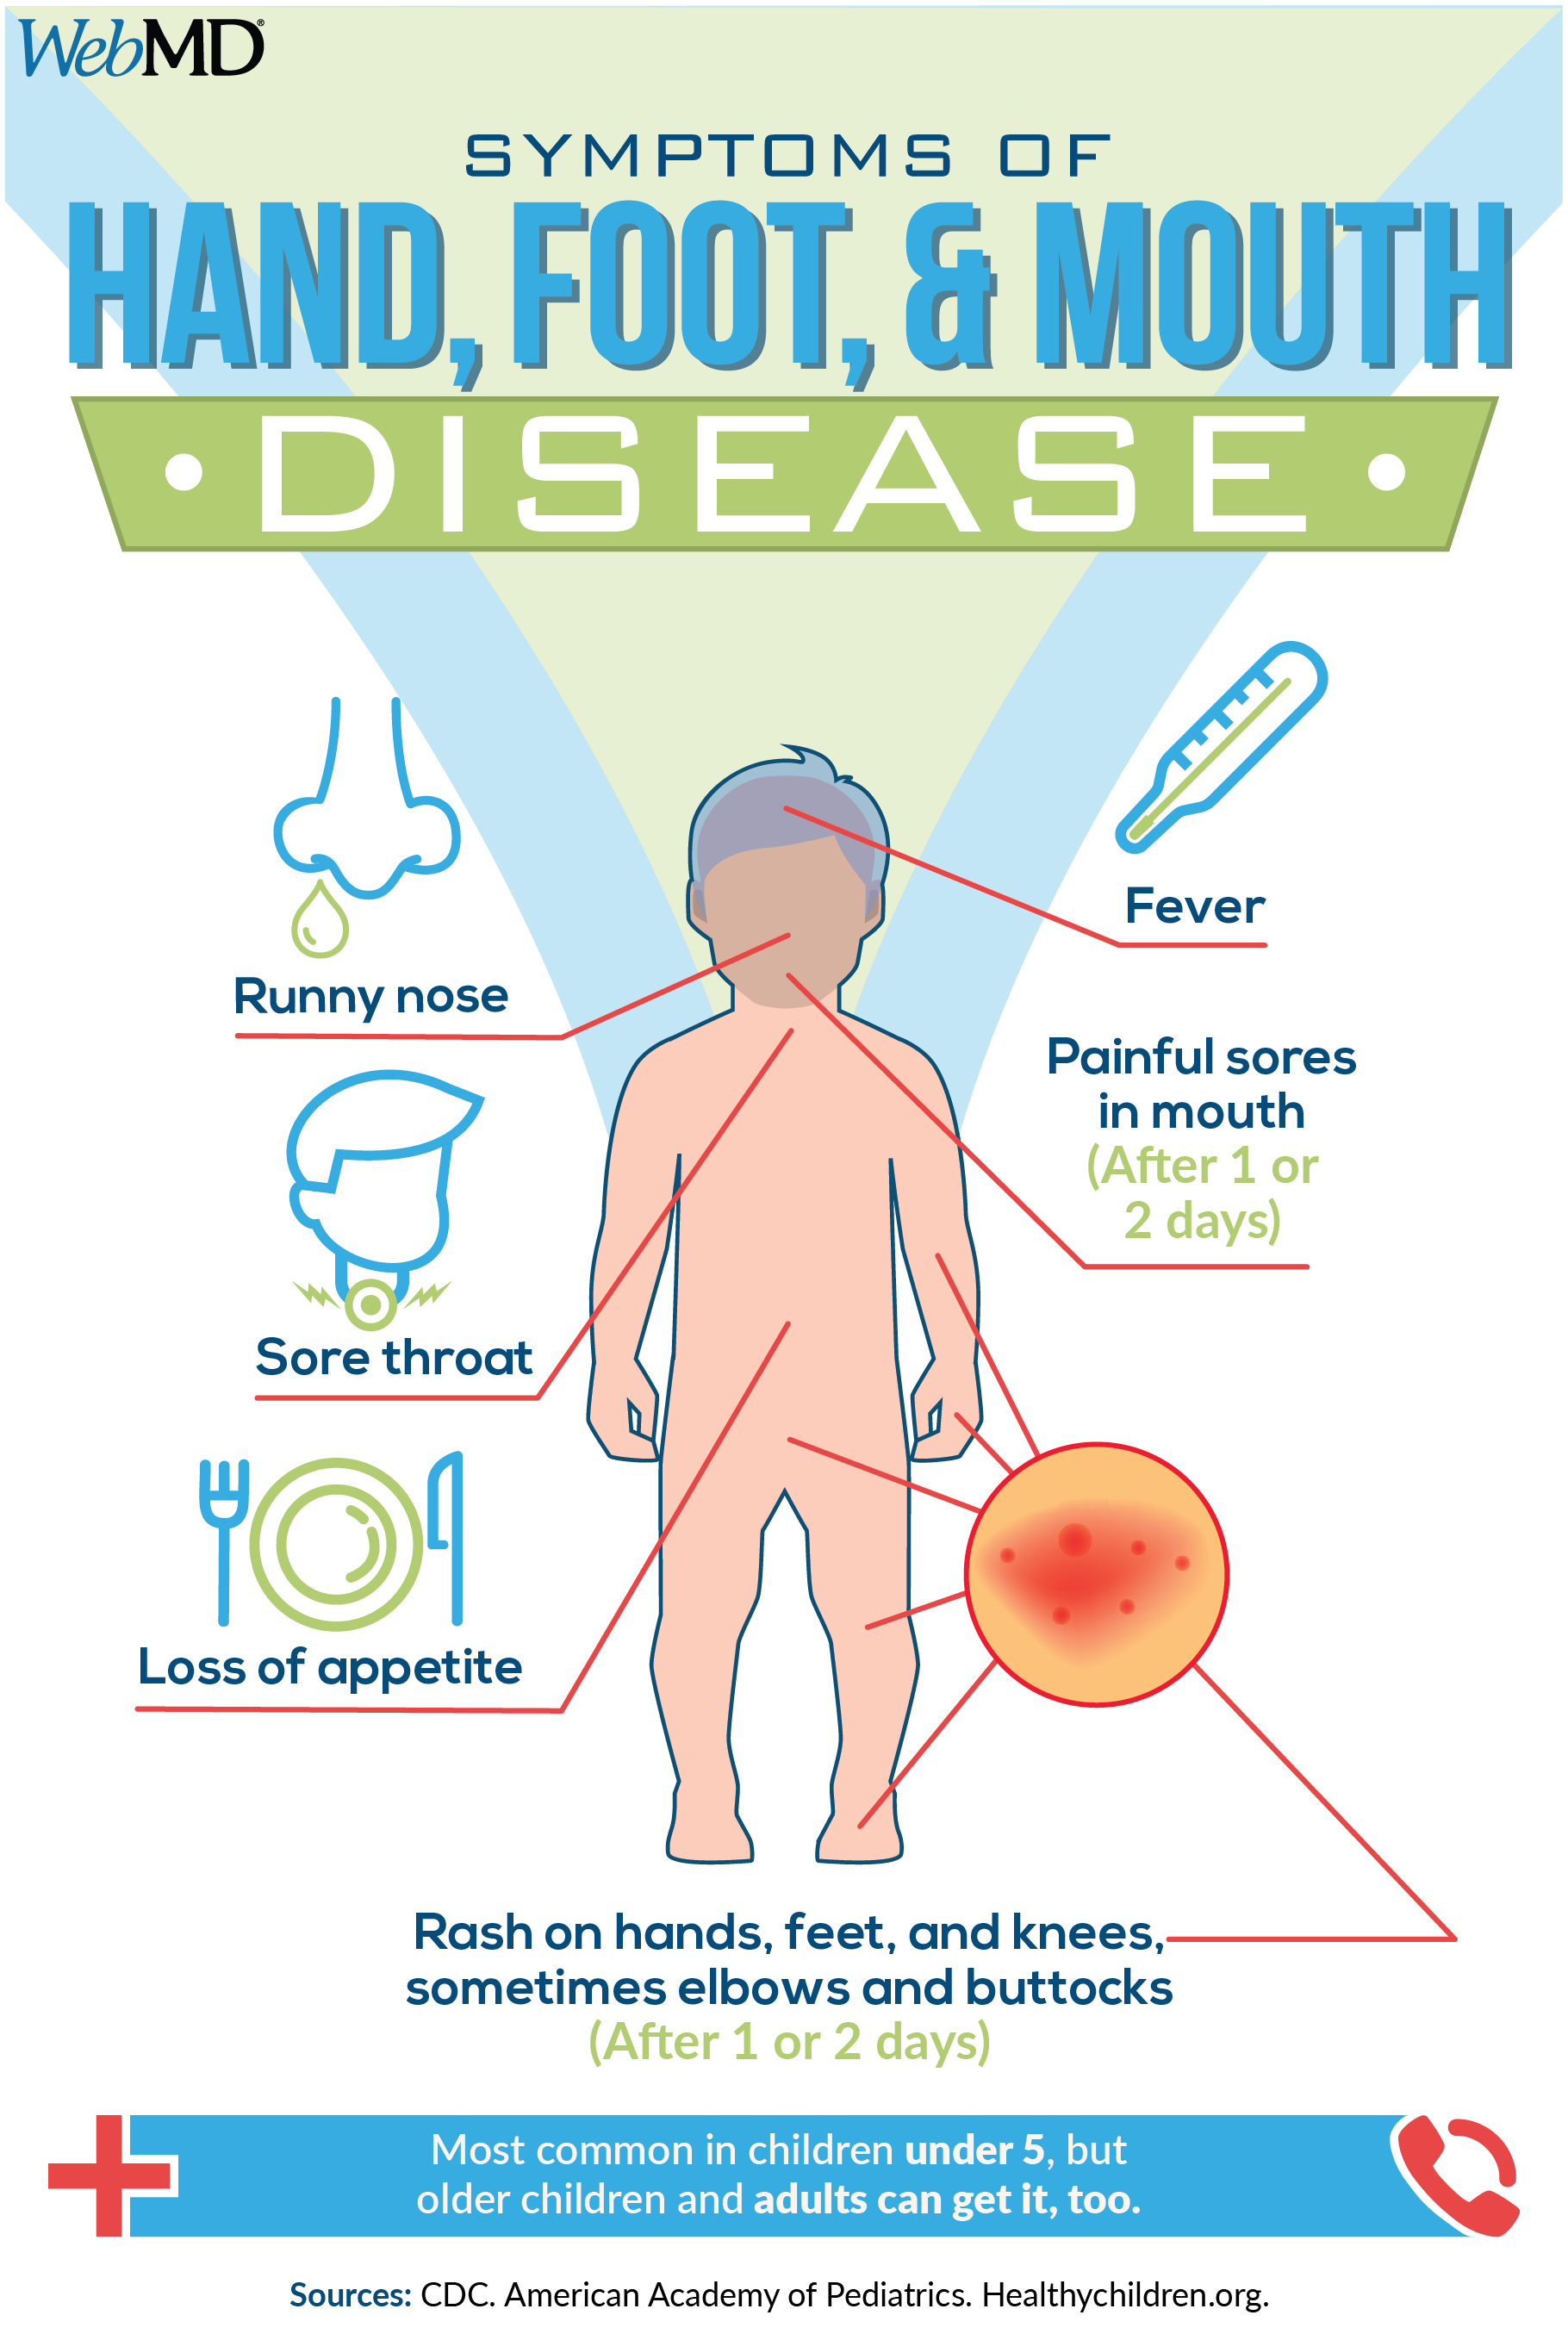 medium resolution of hand foot and mouth disease or hfmd is caused by a virus symptoms include ulcers or sores inside or around the mouth and a rash or blisters on the